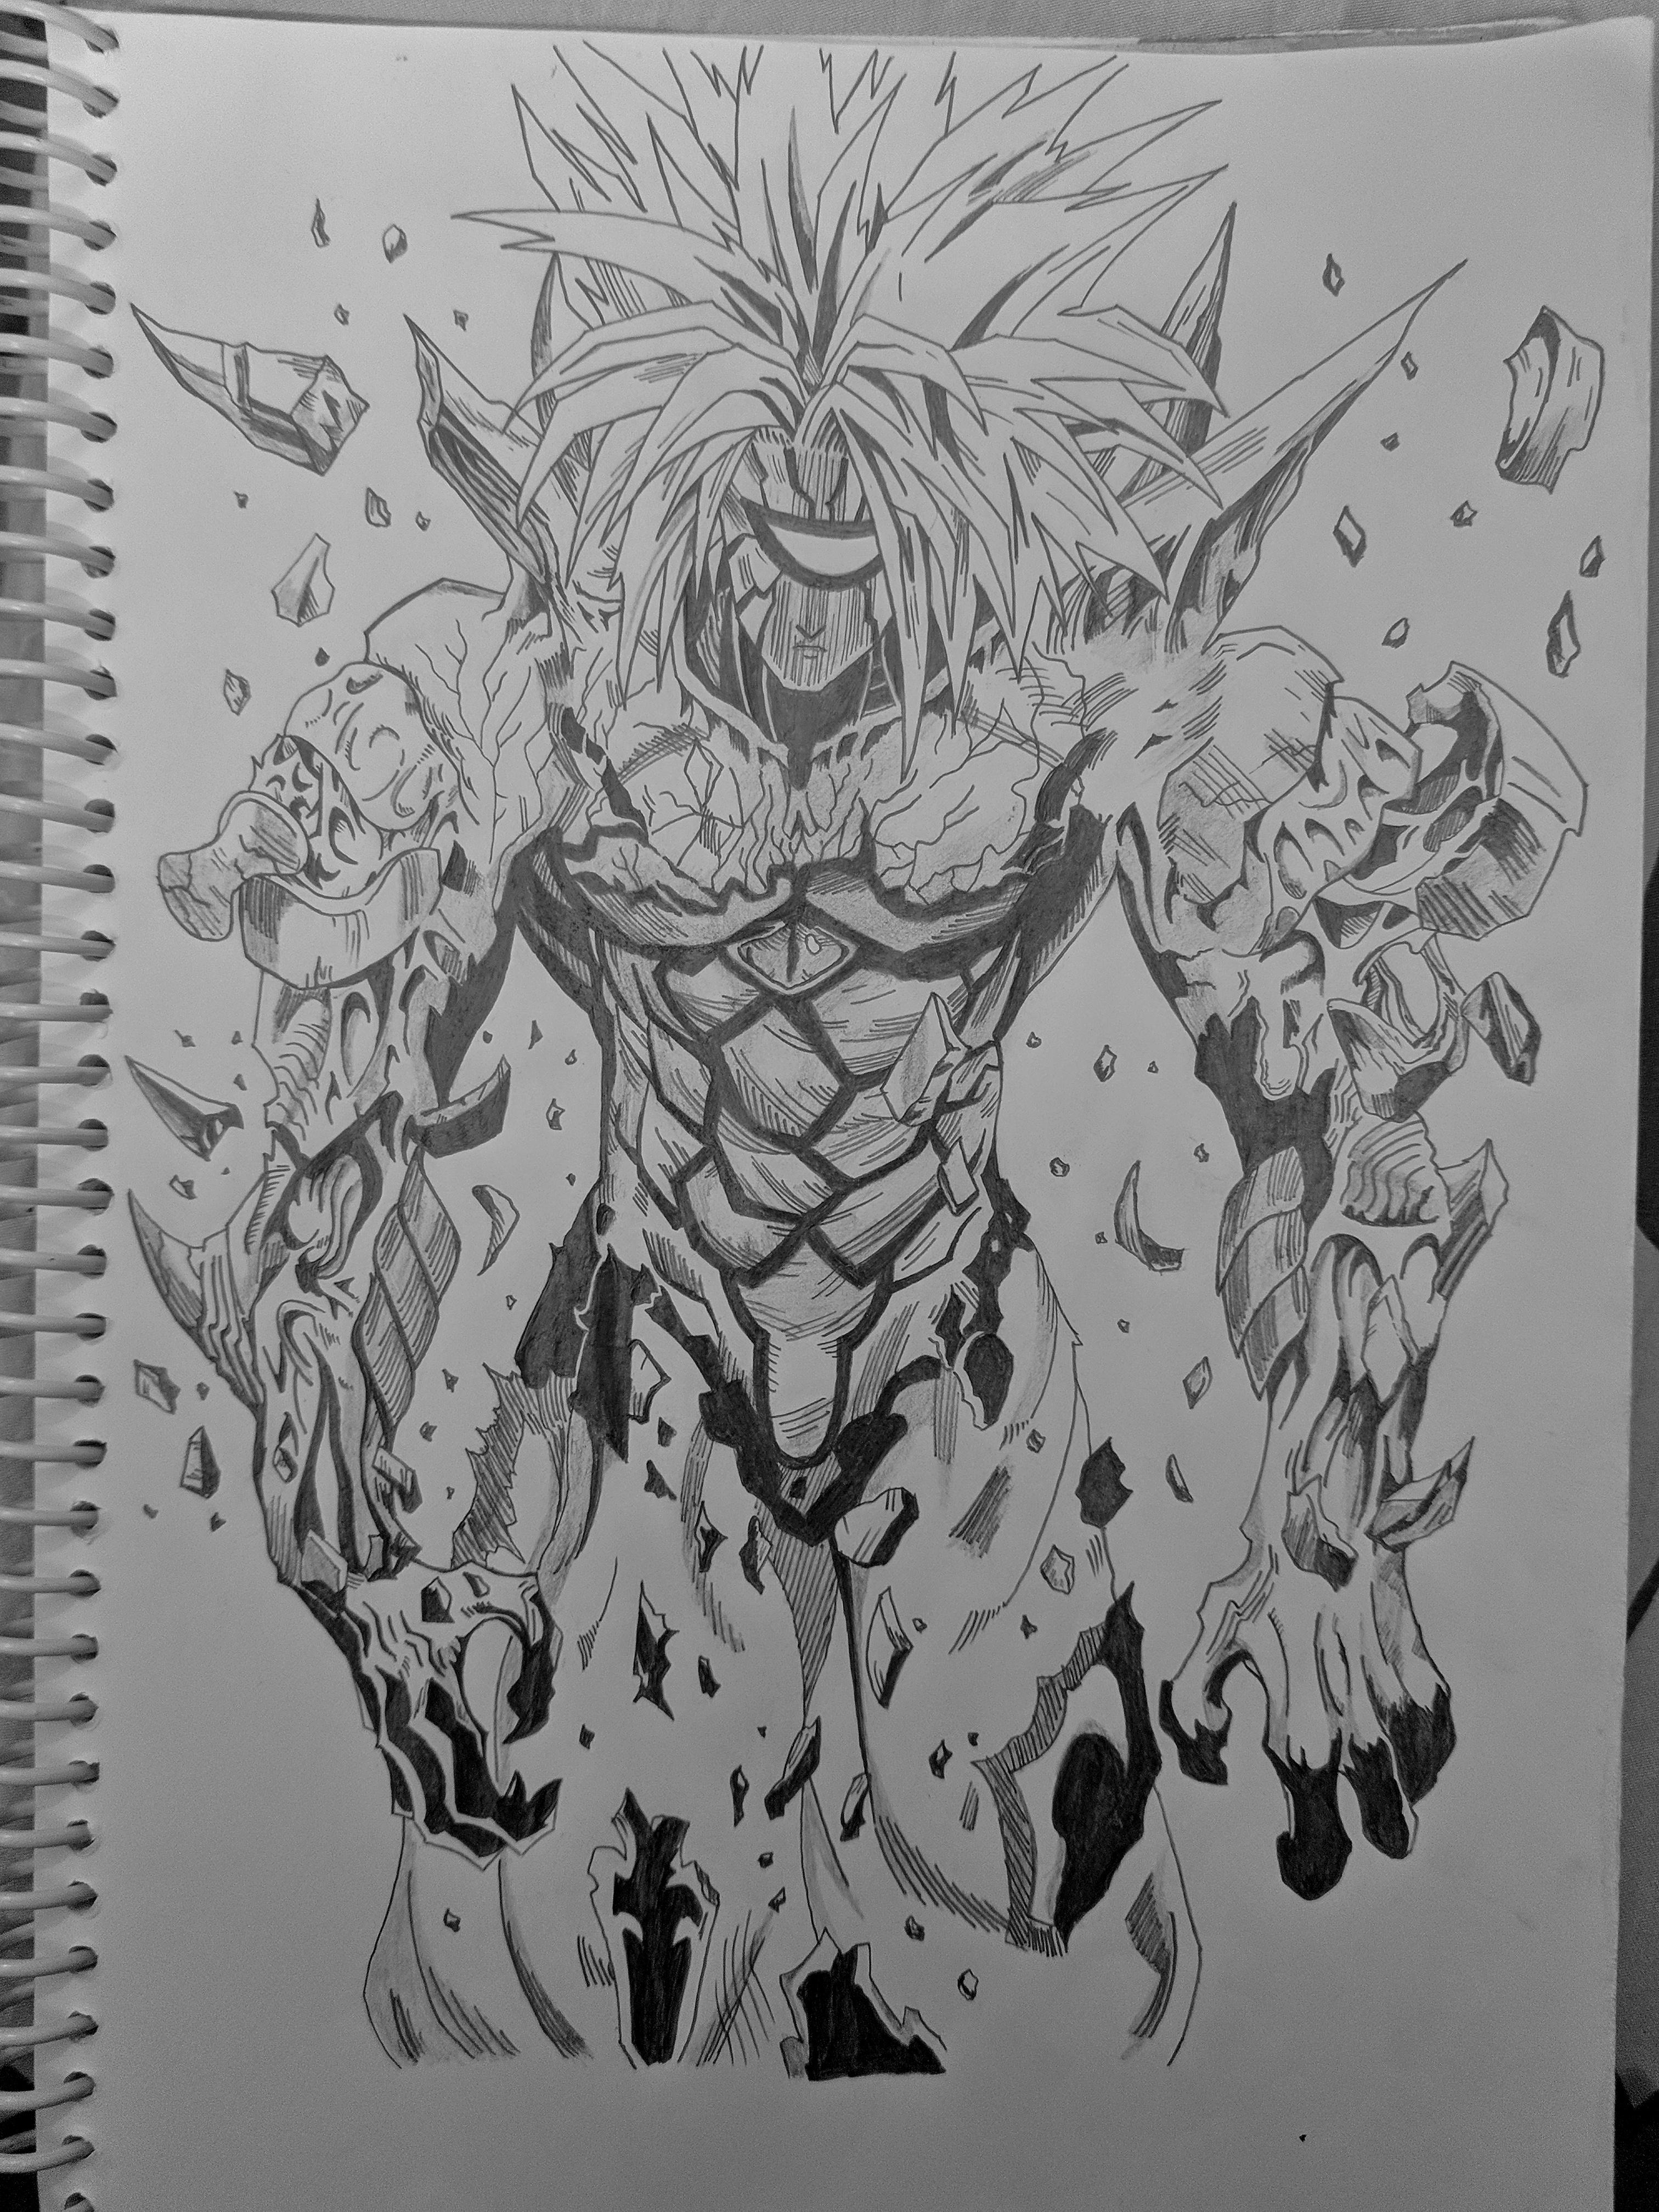 So I Drew Boros R Onepunchman One Punch Man Know Your Meme